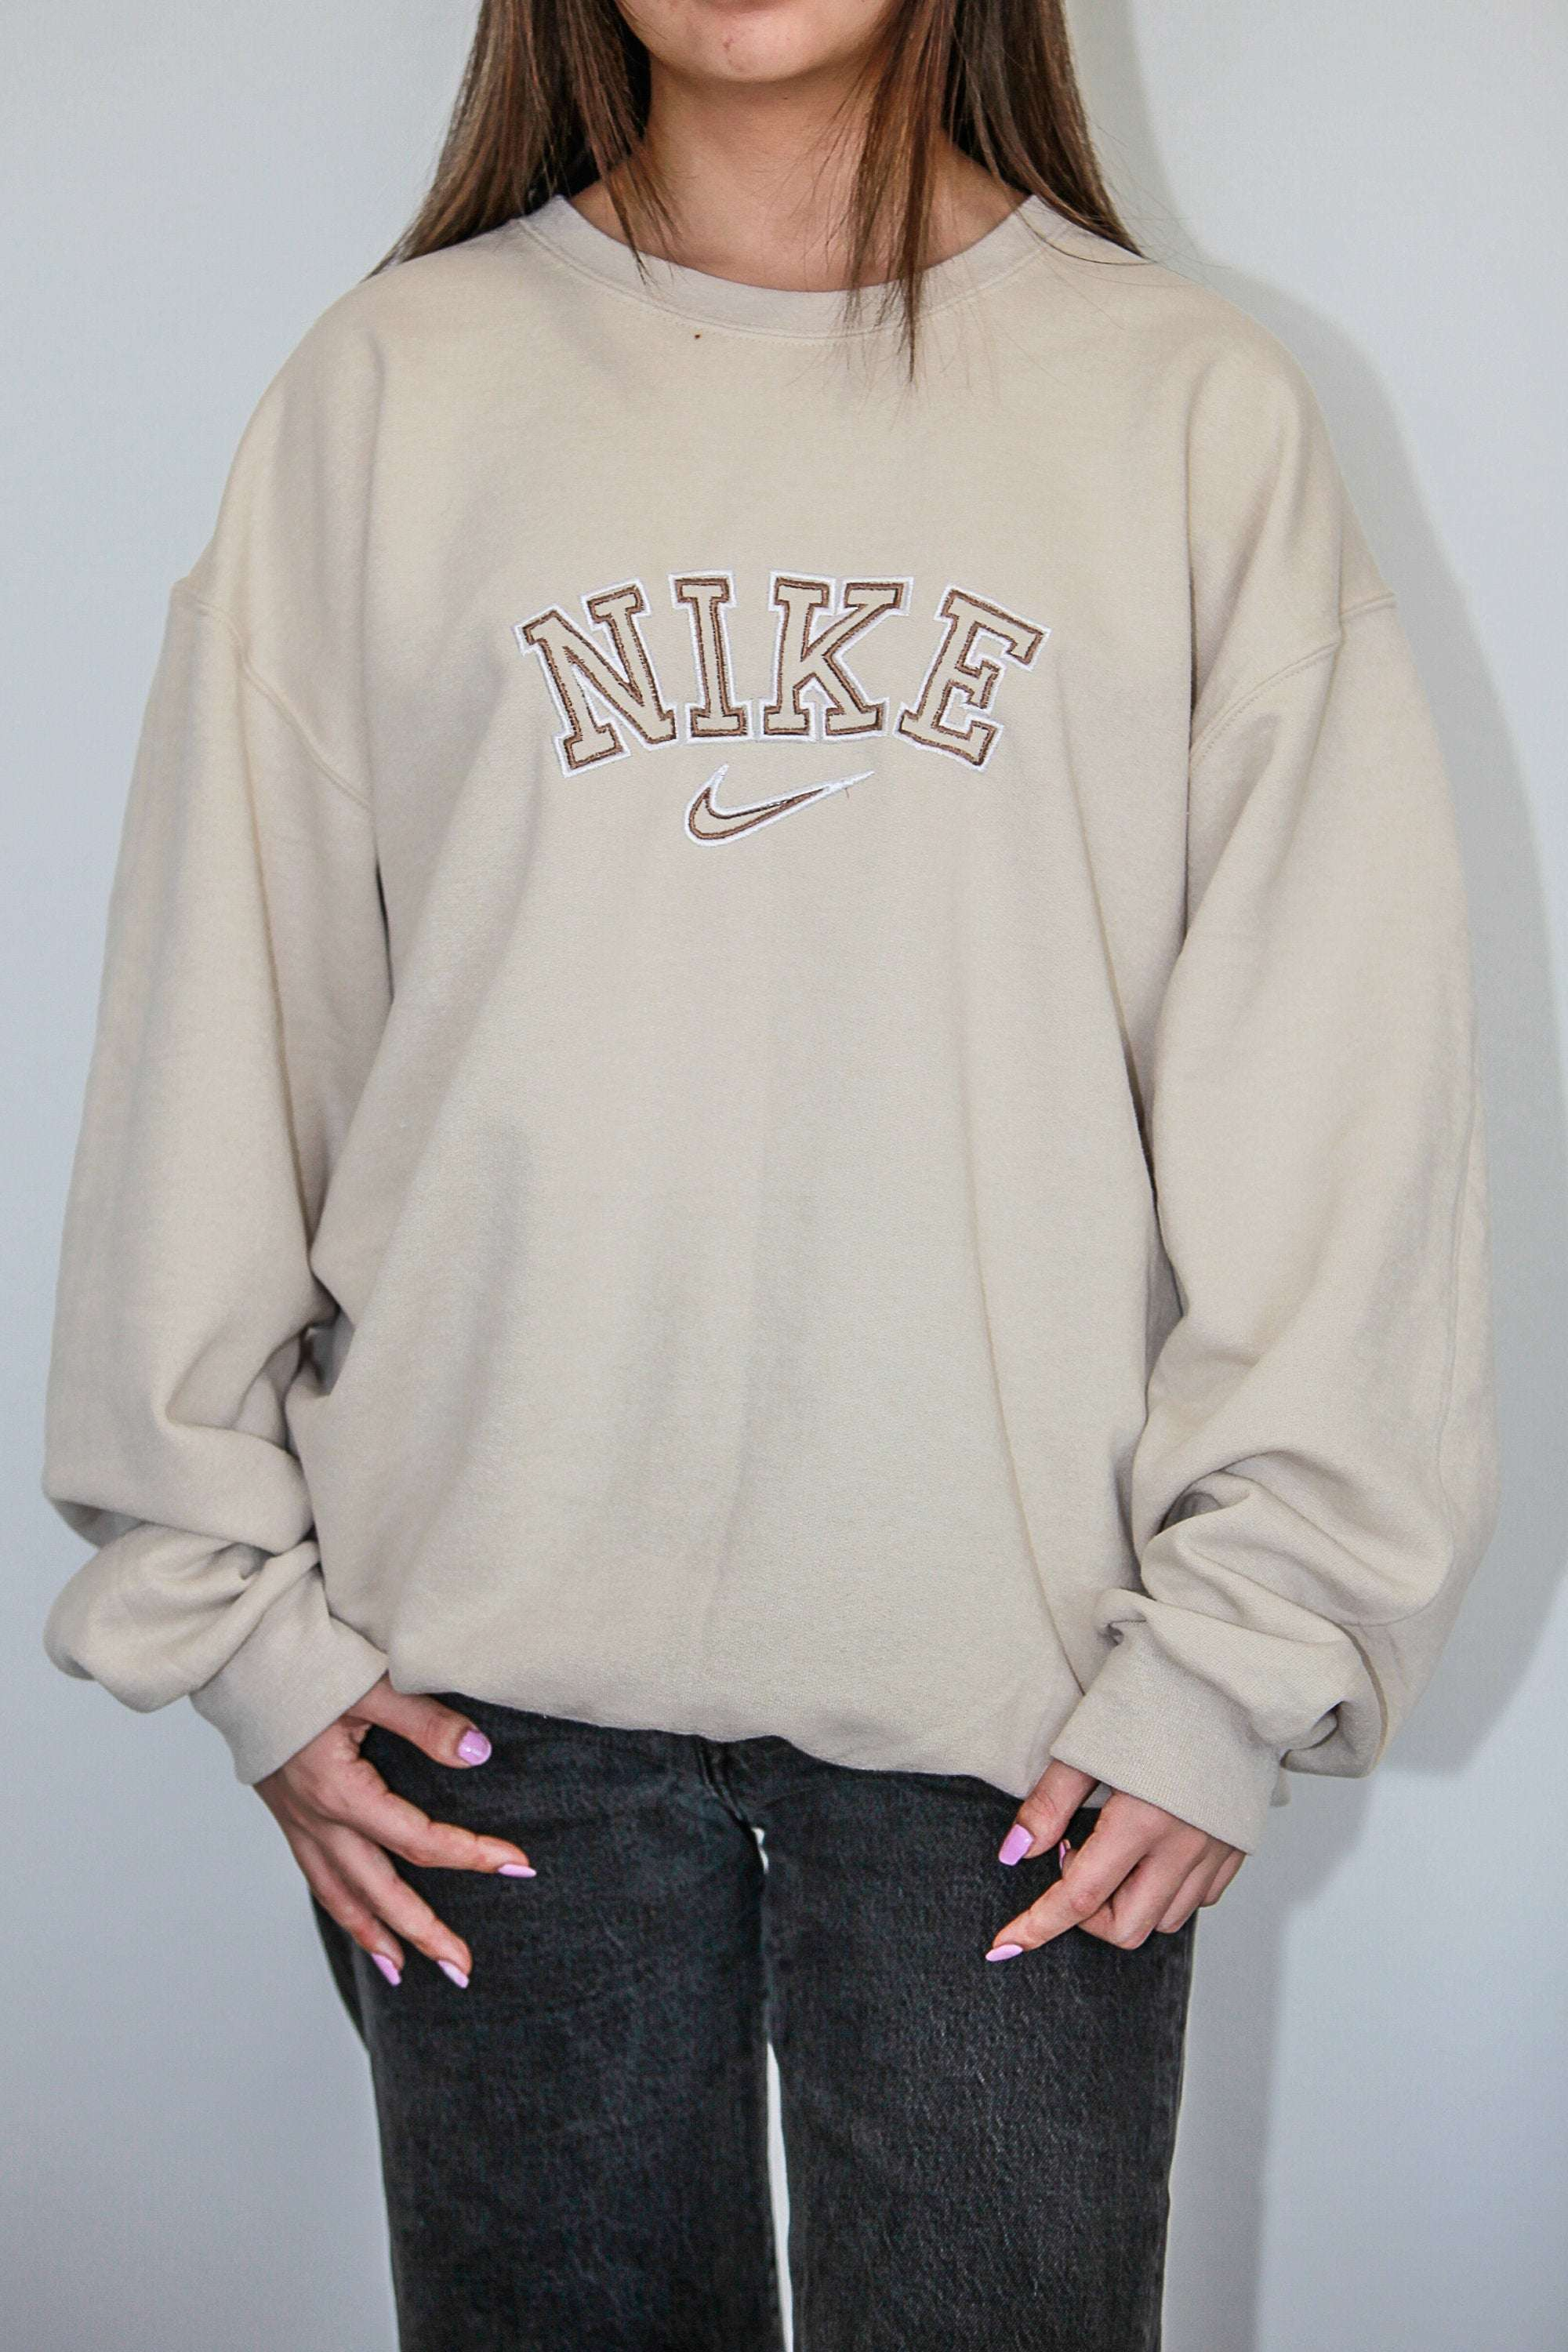 Nike Inspired Embroidered Embroidery